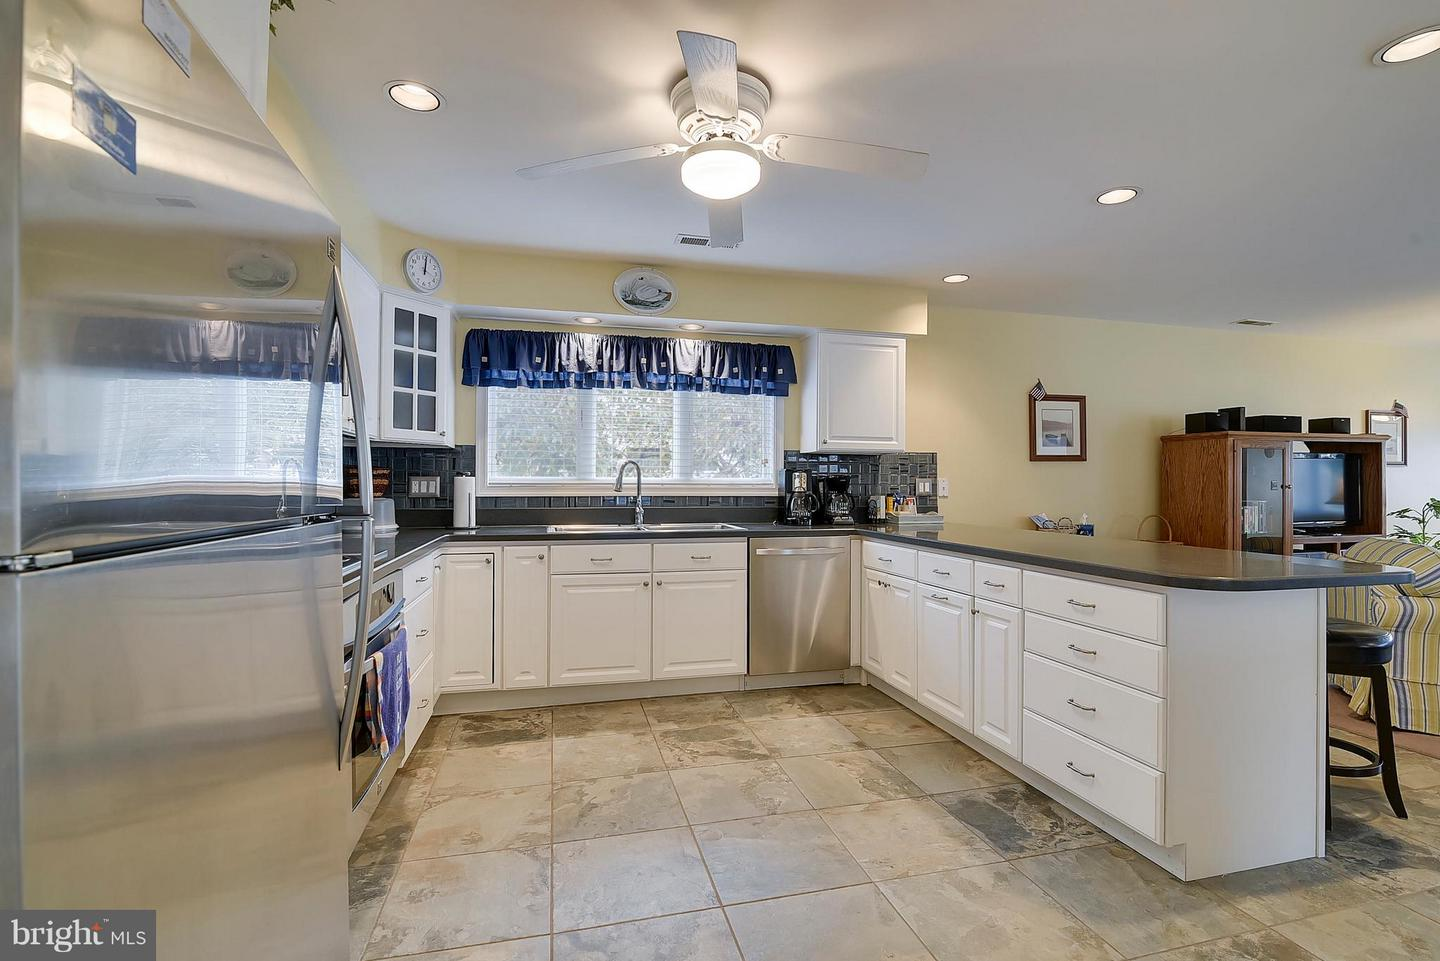 1002344128-300986983782-2018-11-07-14-16-58 39634 Seatrout Cir | North Bethany, DE Real Estate For Sale | MLS# 1002344128  - 1st Choice Properties